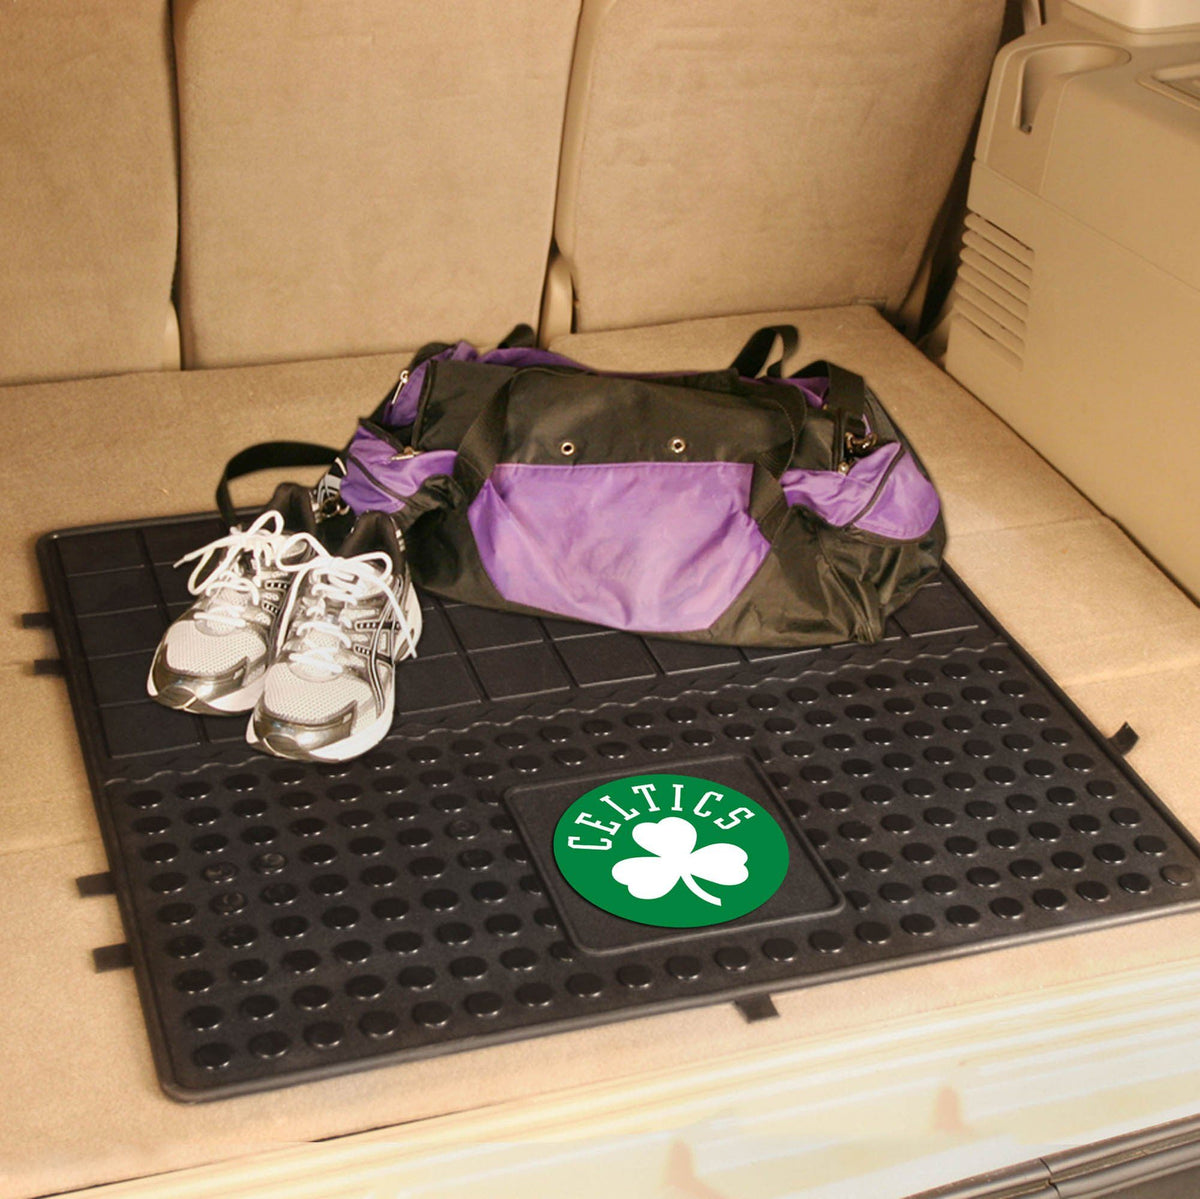 NBA - Heavy Duty Vinyl Cargo Mat NBA Mats, Trunk Mats, Heavy Duty Vinyl Cargo Mat, NBA, Auto Fan Mats Boston Celtics